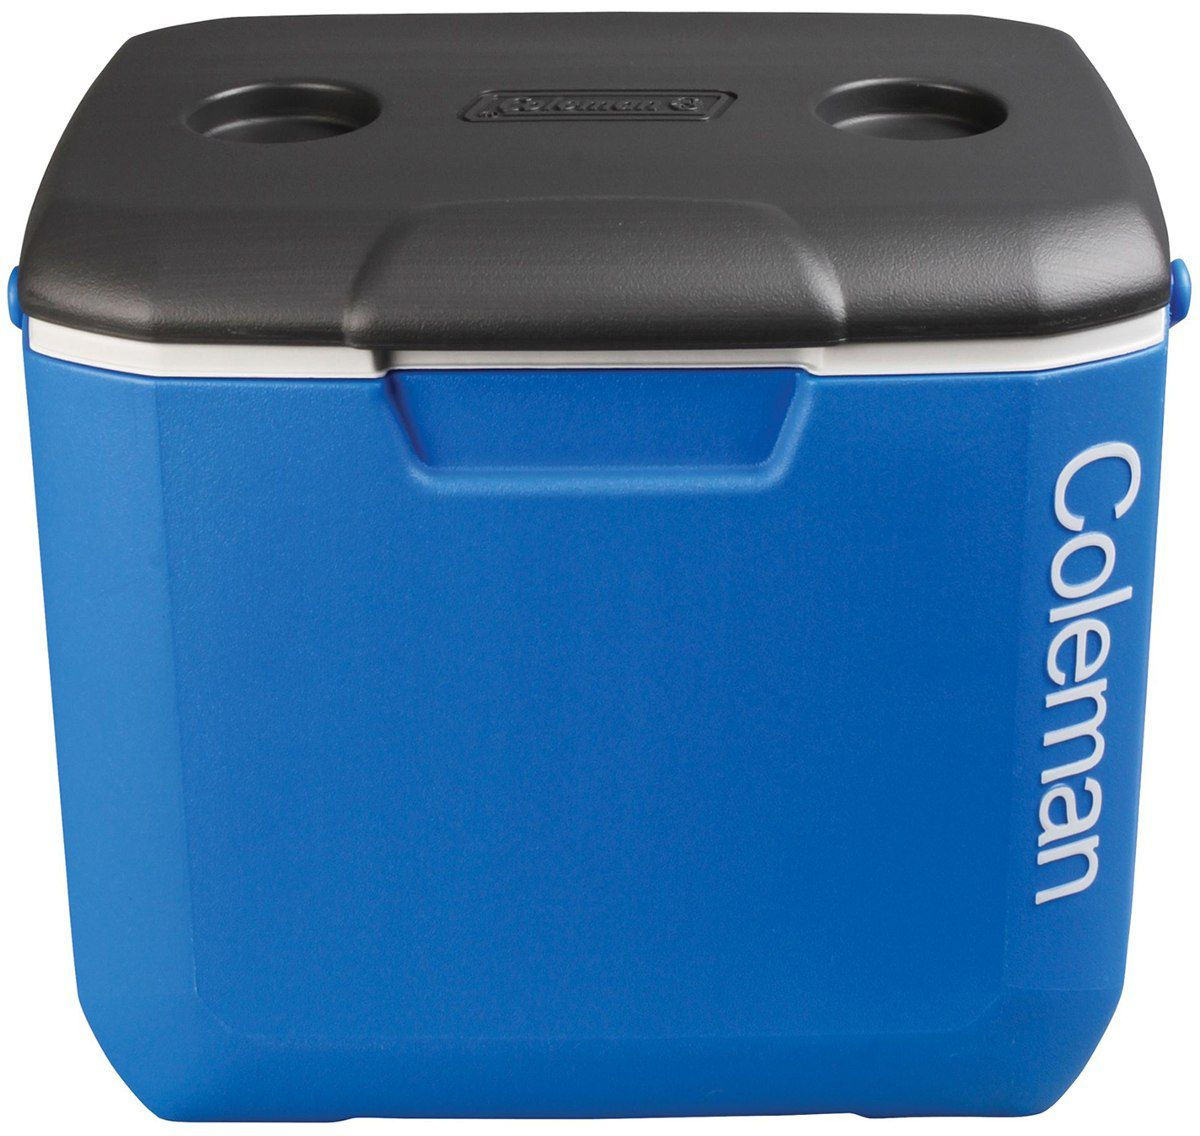 Caixa Térmica Cooler Coleman Excursion 30 quart